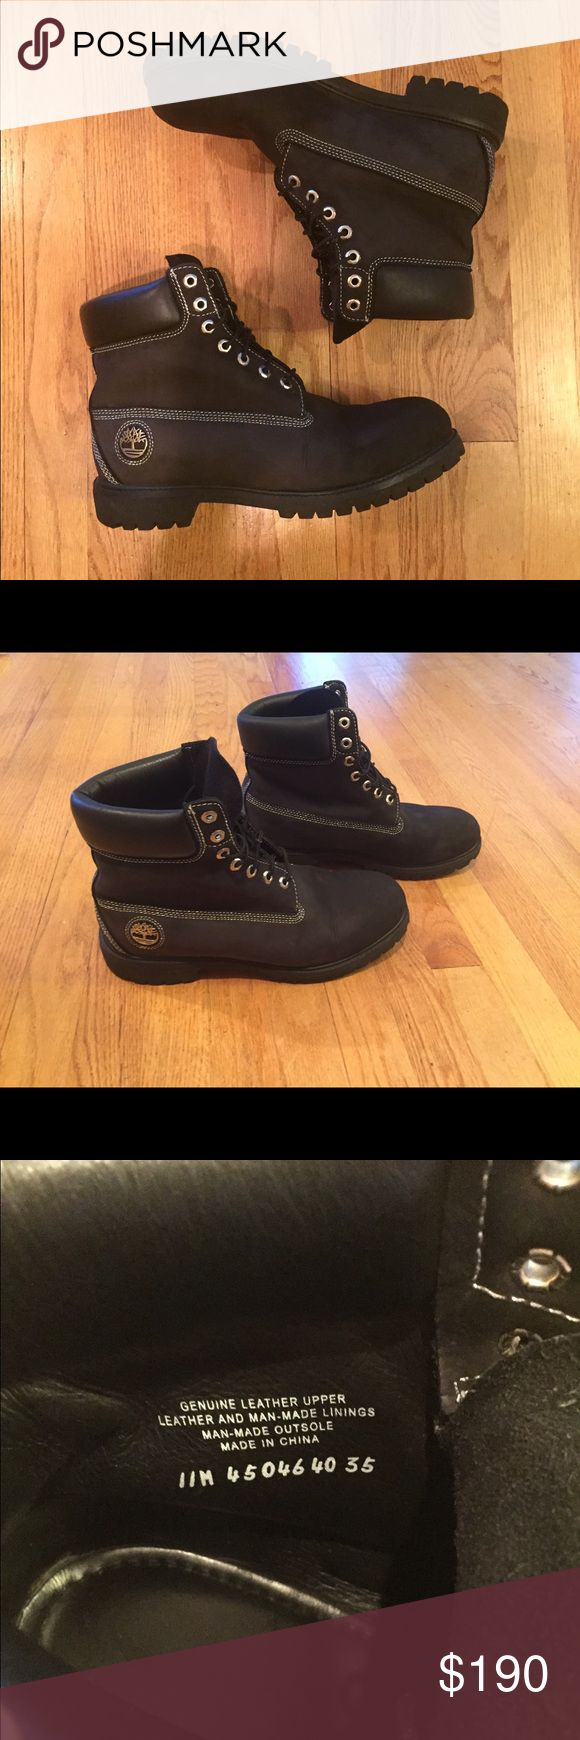 Timberland boots Black limited edition. Purchased few years ago but used very carefully at the time used so there's no damage to it. It still looks almost like new. ❌No trade❌Bundle discount Timberland Shoes Boots